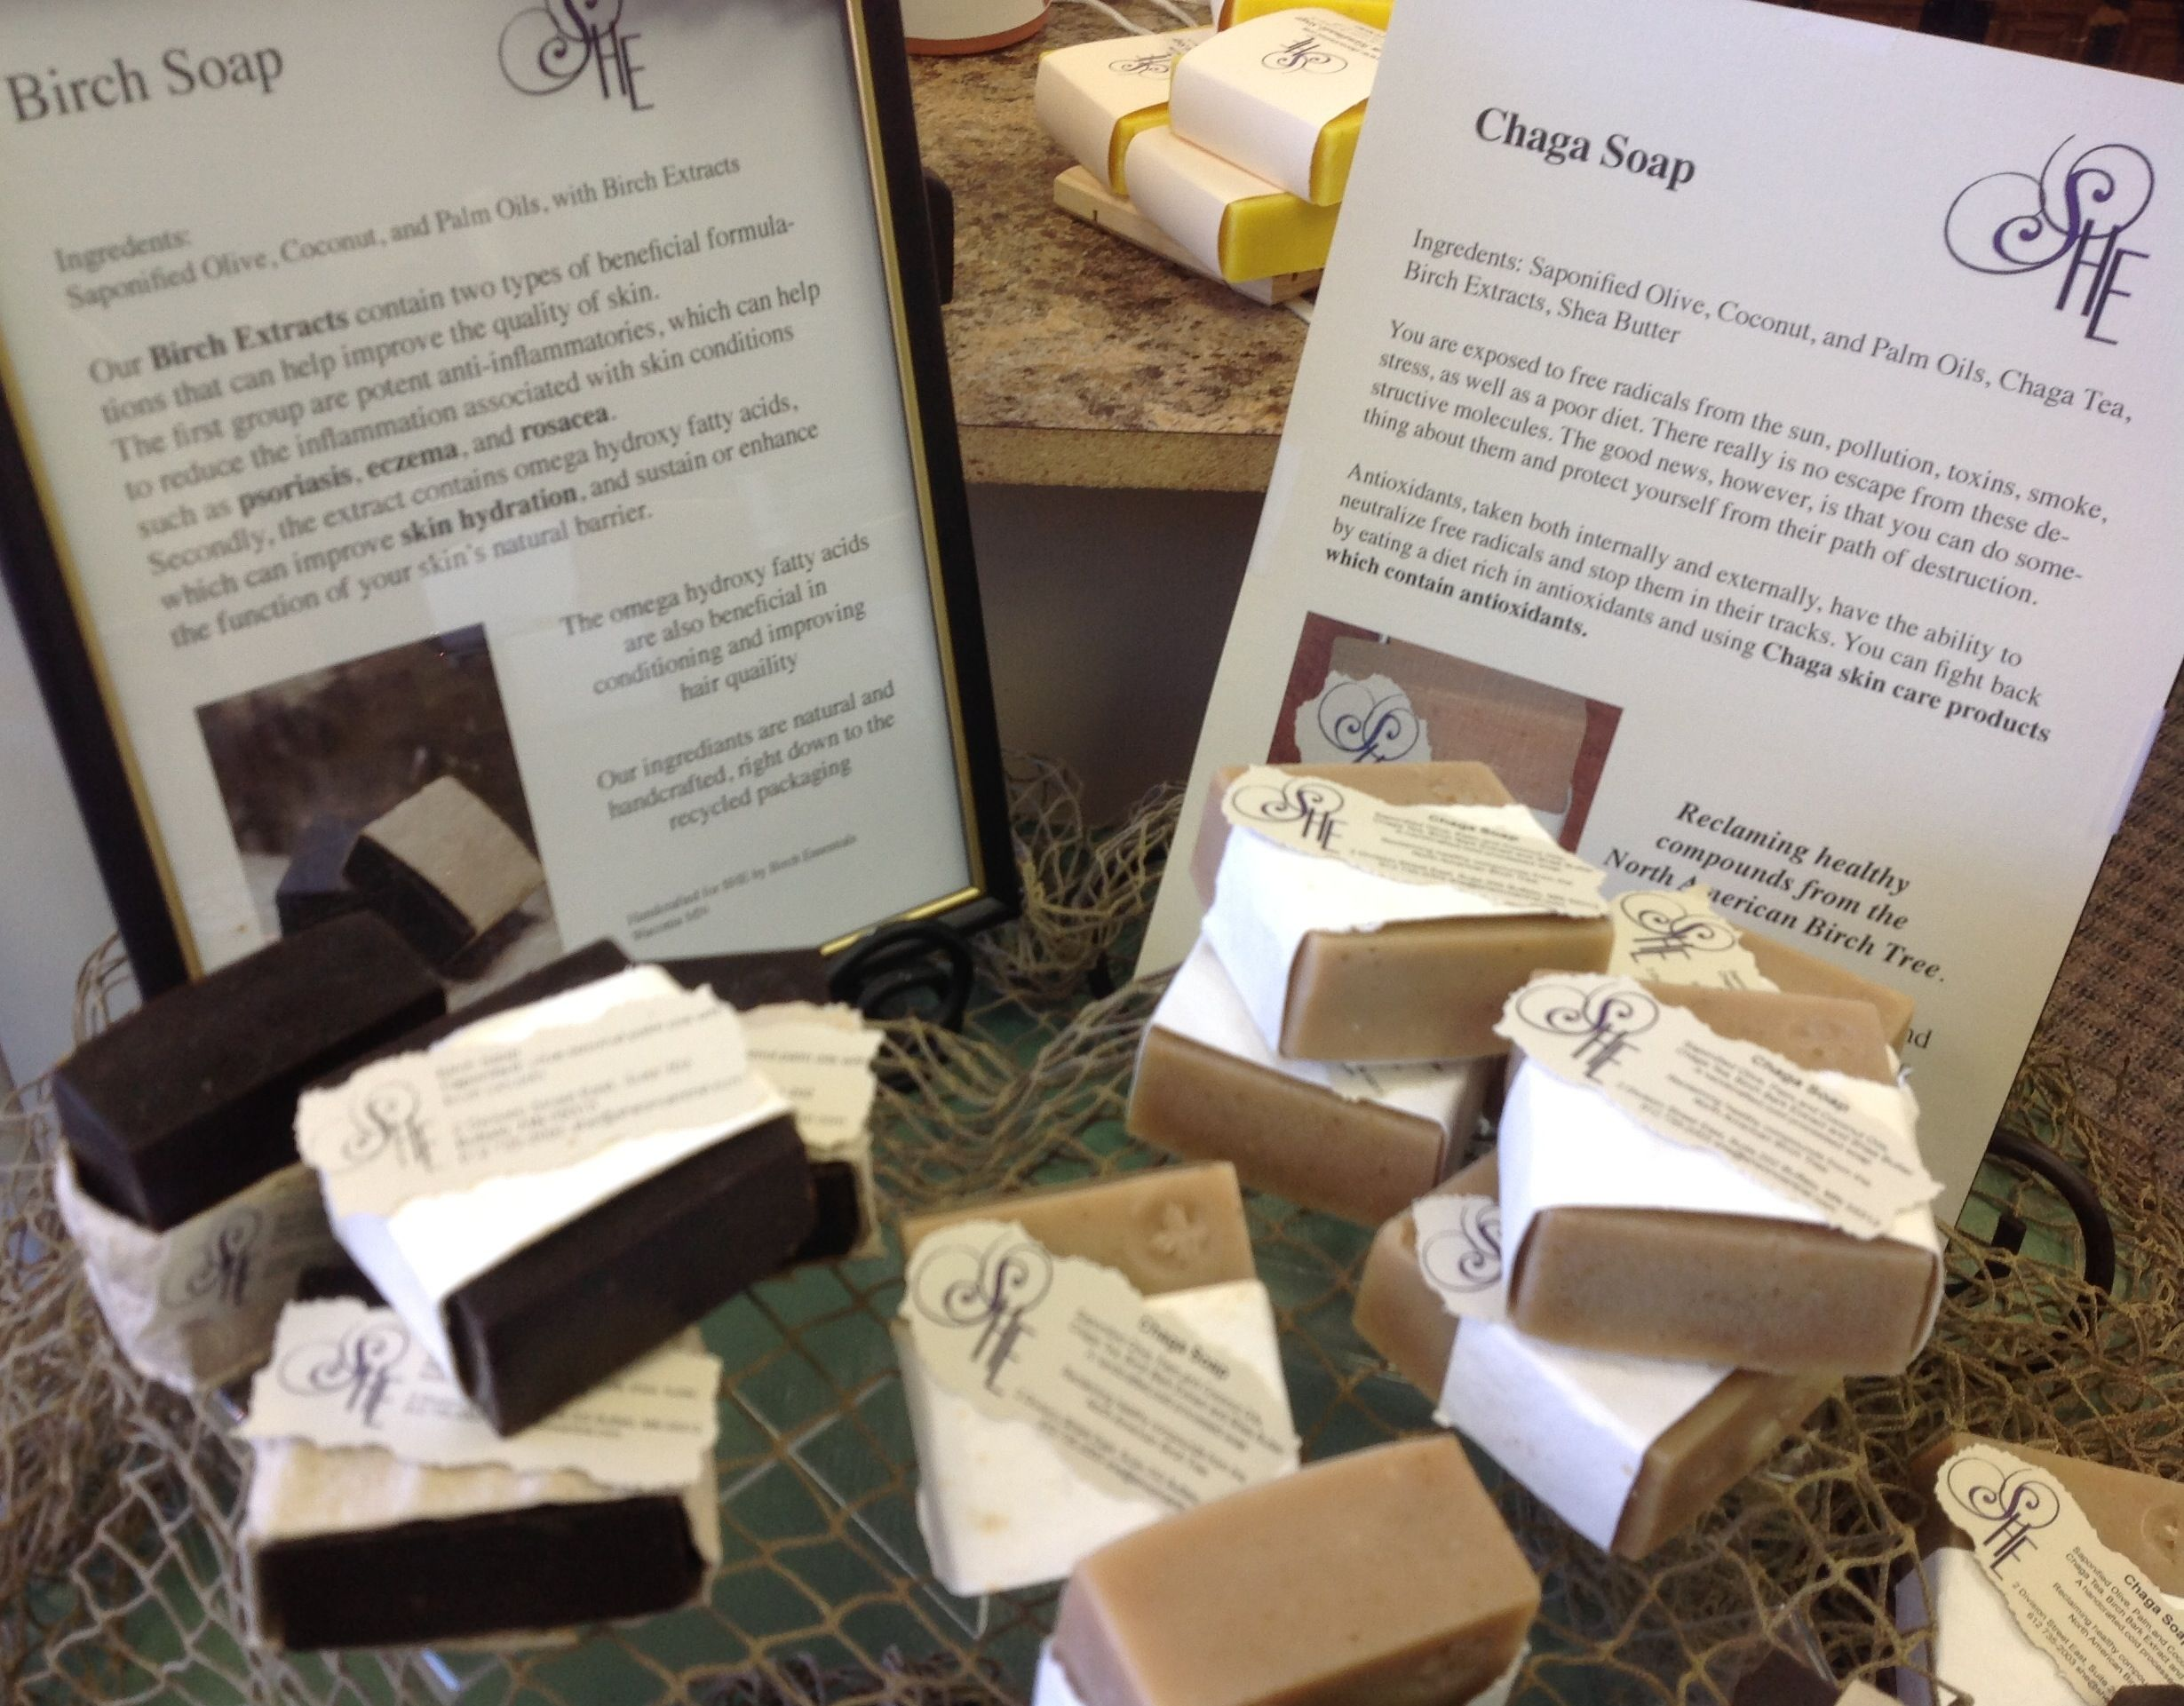 Soap with a purpose... Birch & Chaga Soap. Handcrafted in Minnesota.